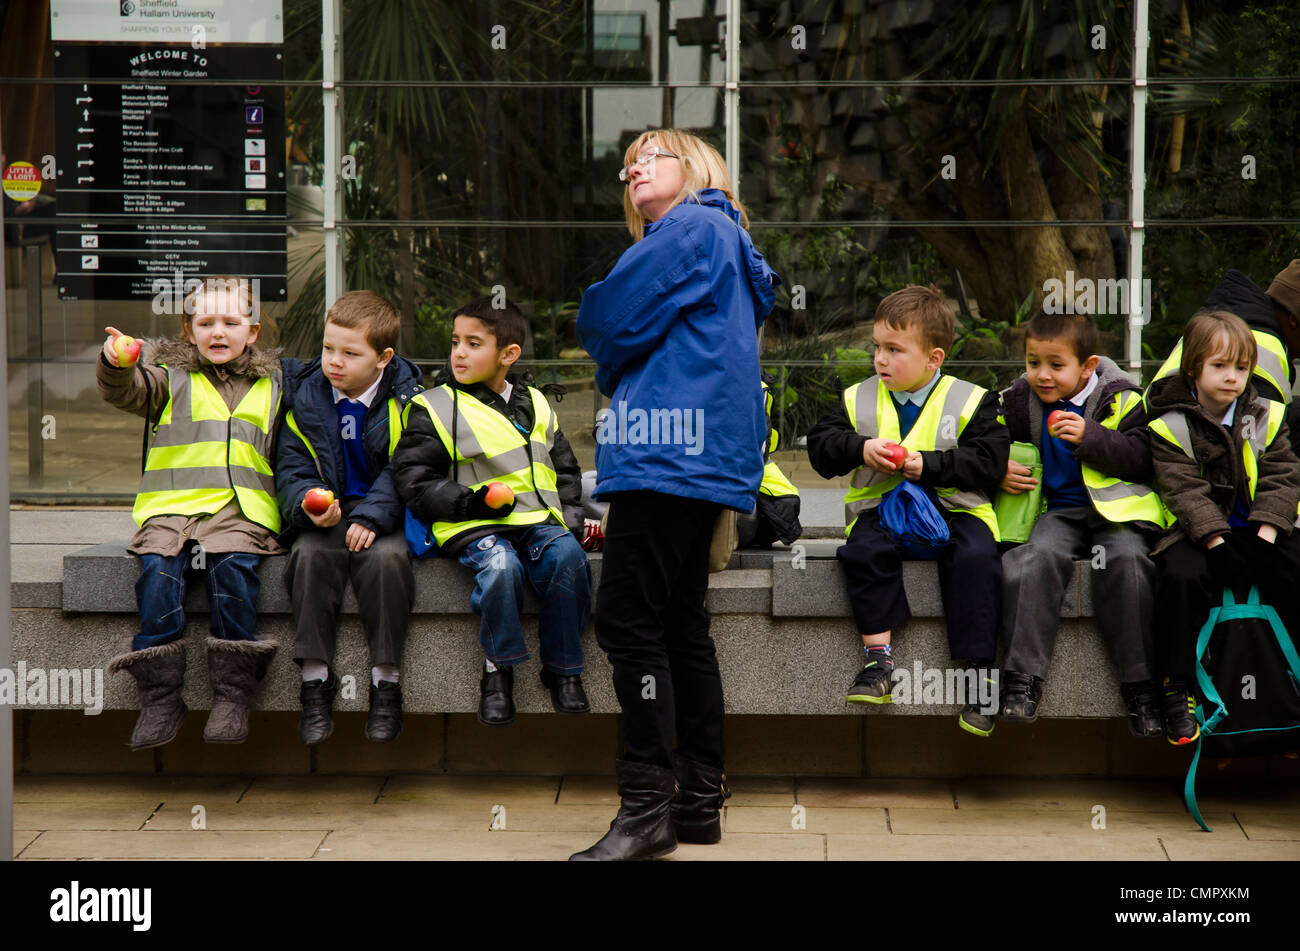 Class of young schoolchildren on excursion in Sheffield, UK. Note they're all eating apples, not junk food. Stock Photo